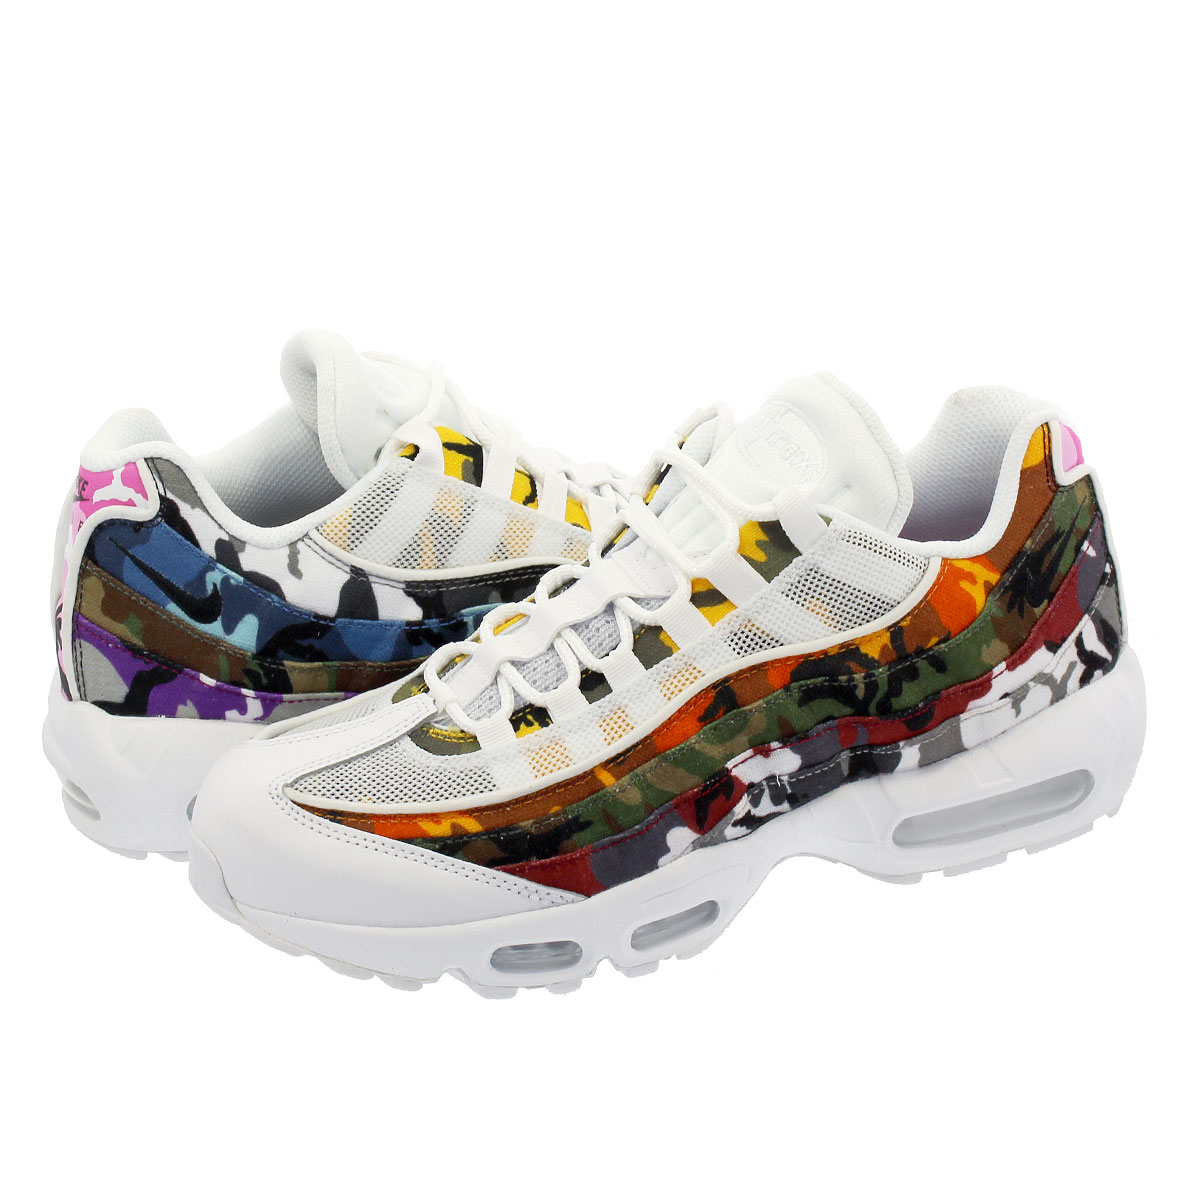 camo air max 95 Find Jordan accessories and socks for women in a variety of  colors and pink and white jordans styles. The silence that met my question  was ... 06ef6acfbfb8